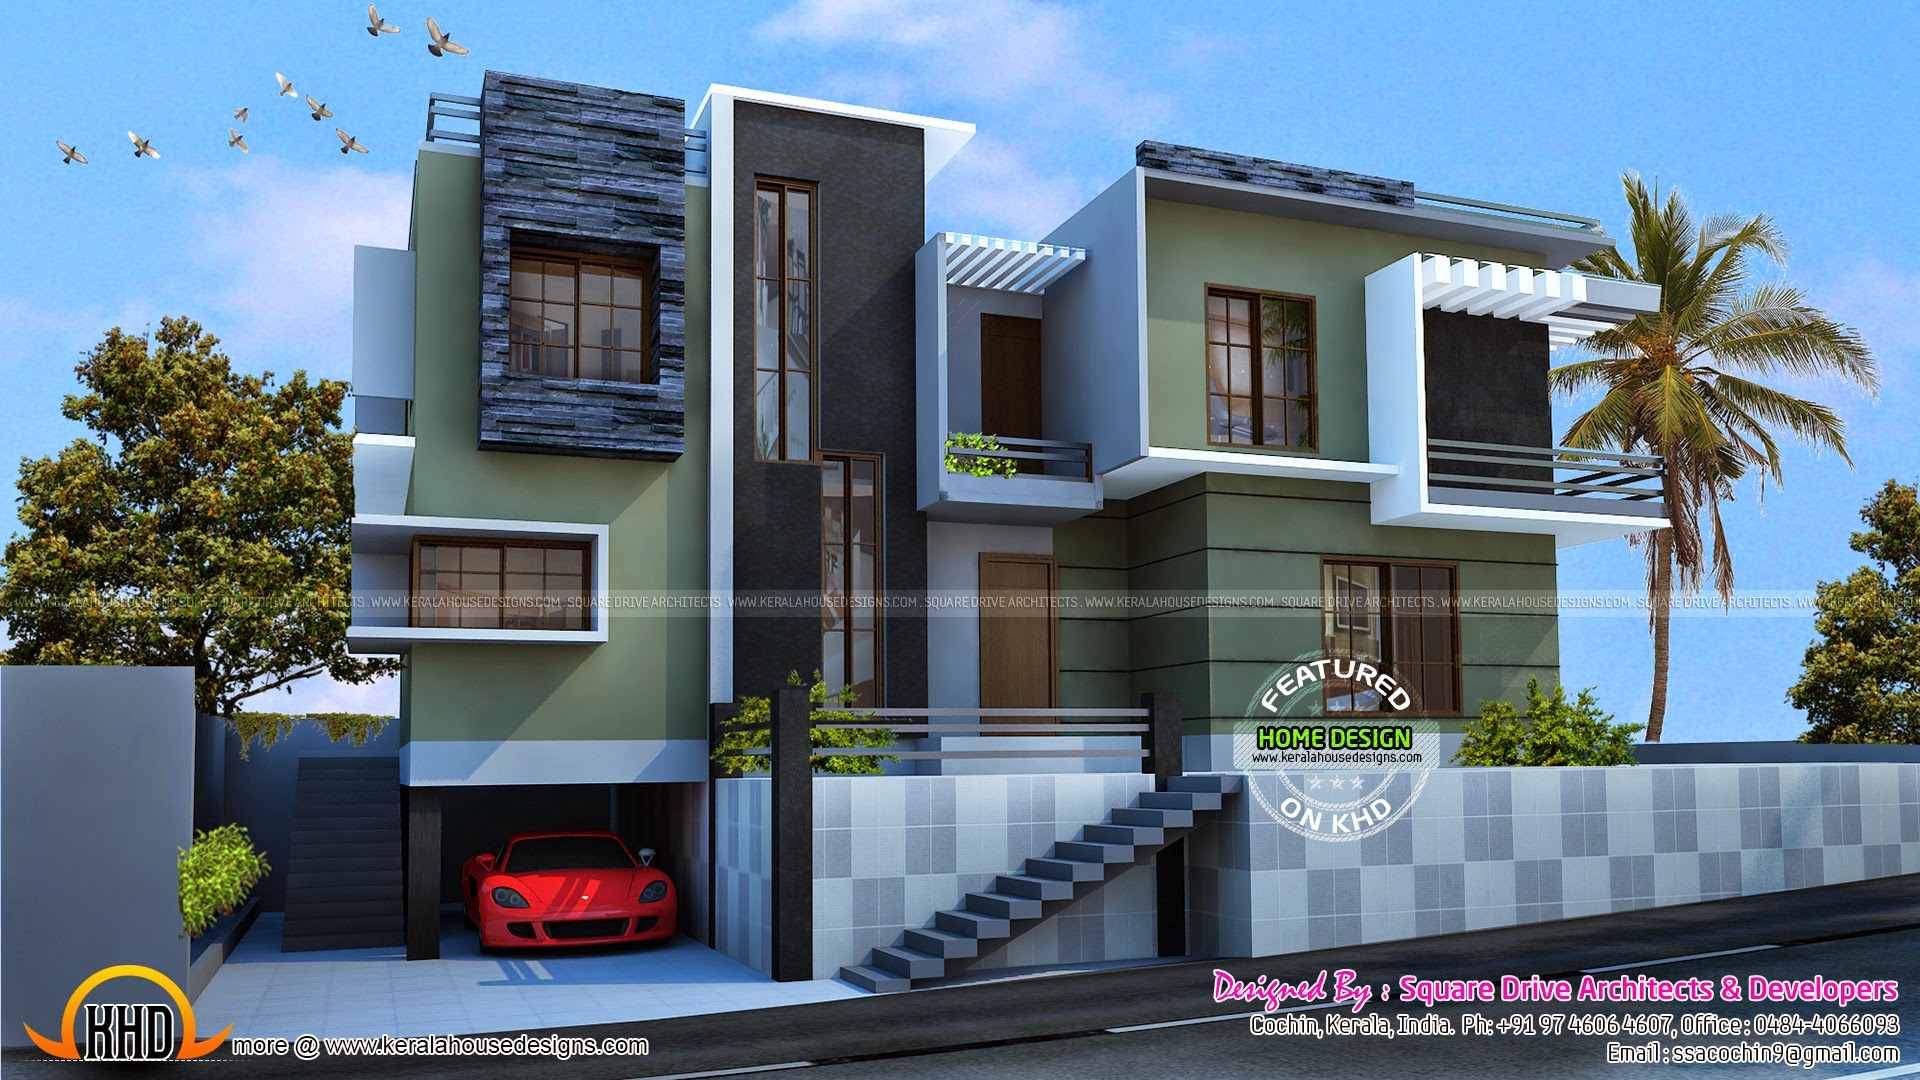 Modern duplex house kerala home design and floor plans for Modern house plans 2400 sq ft